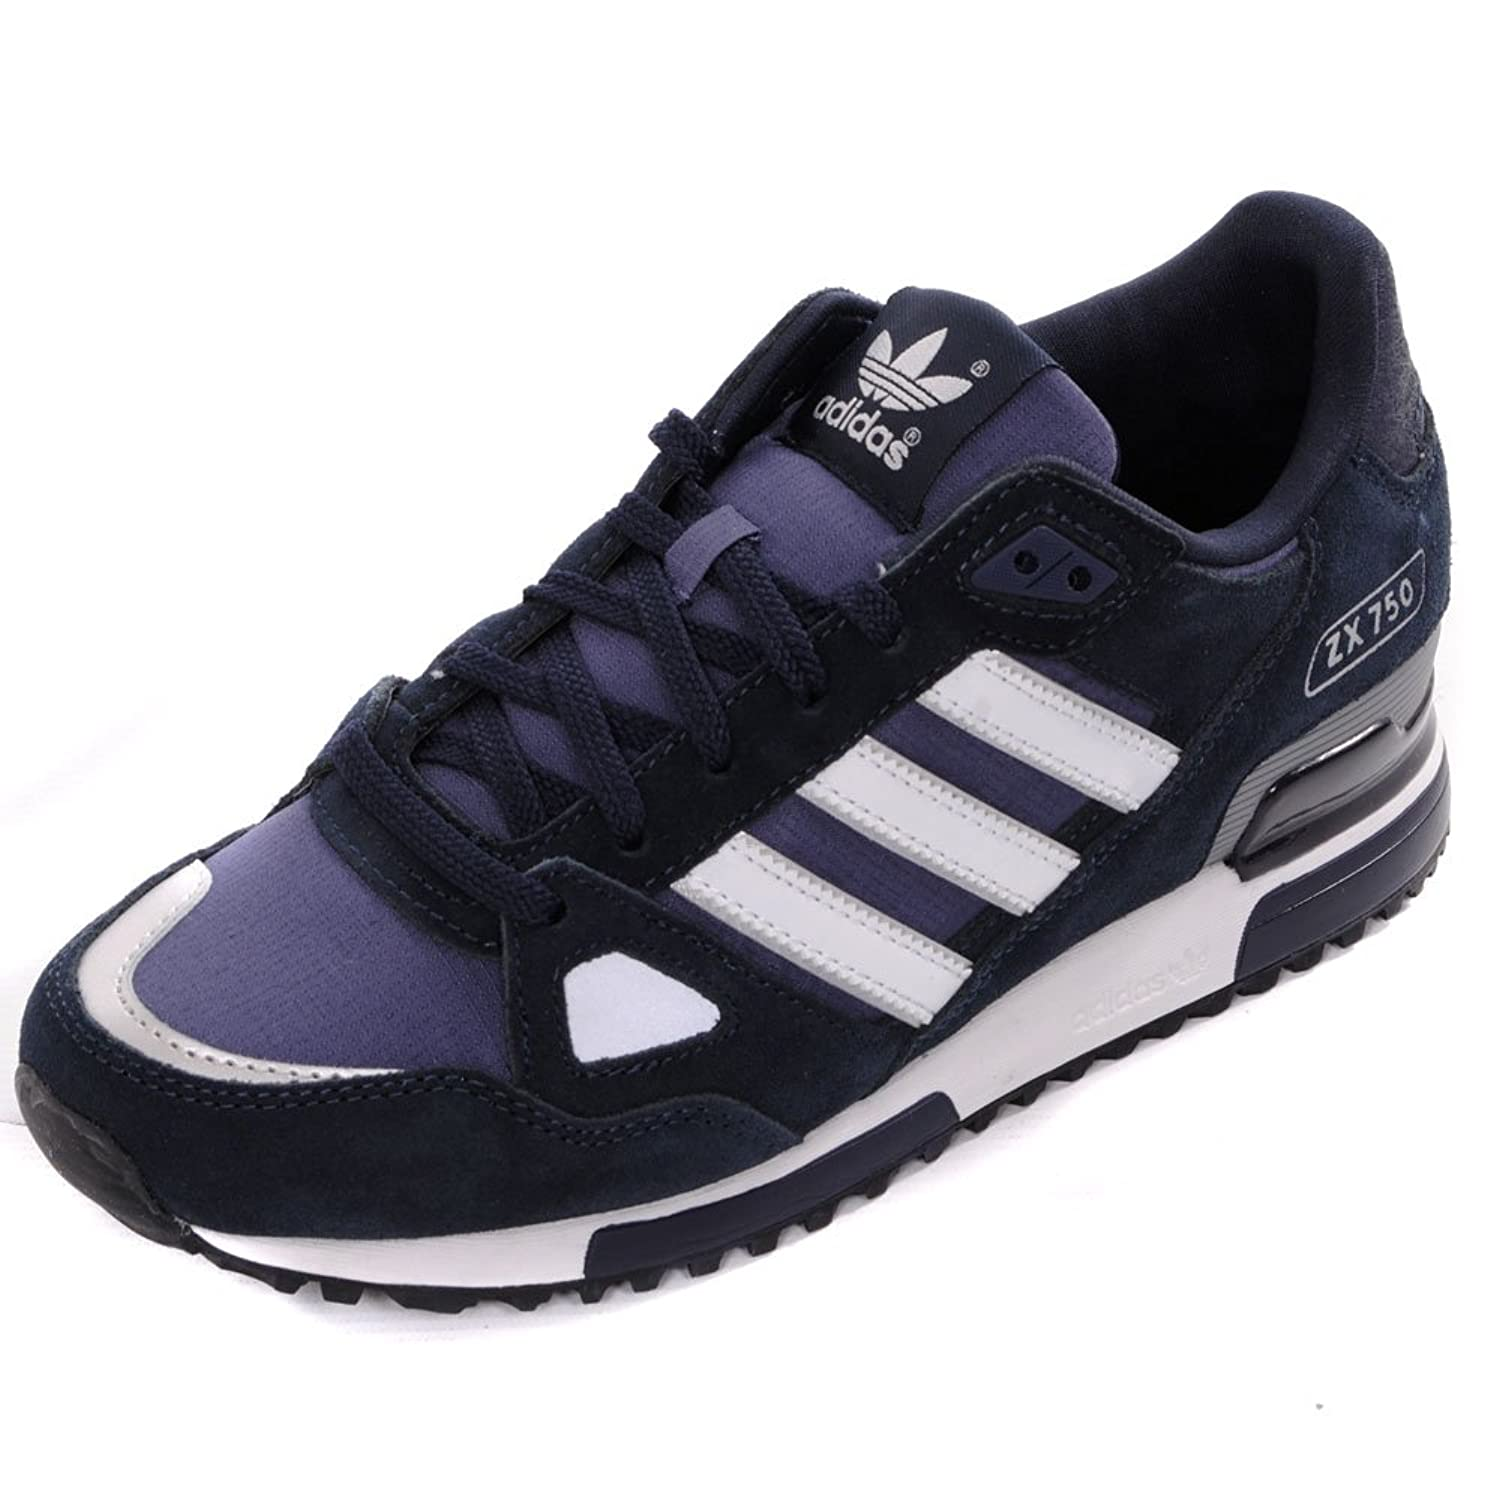 a85ea56521a Adidas Originals ZX 750 Sports Casual Shoes Men s Trainers  Amazon ...